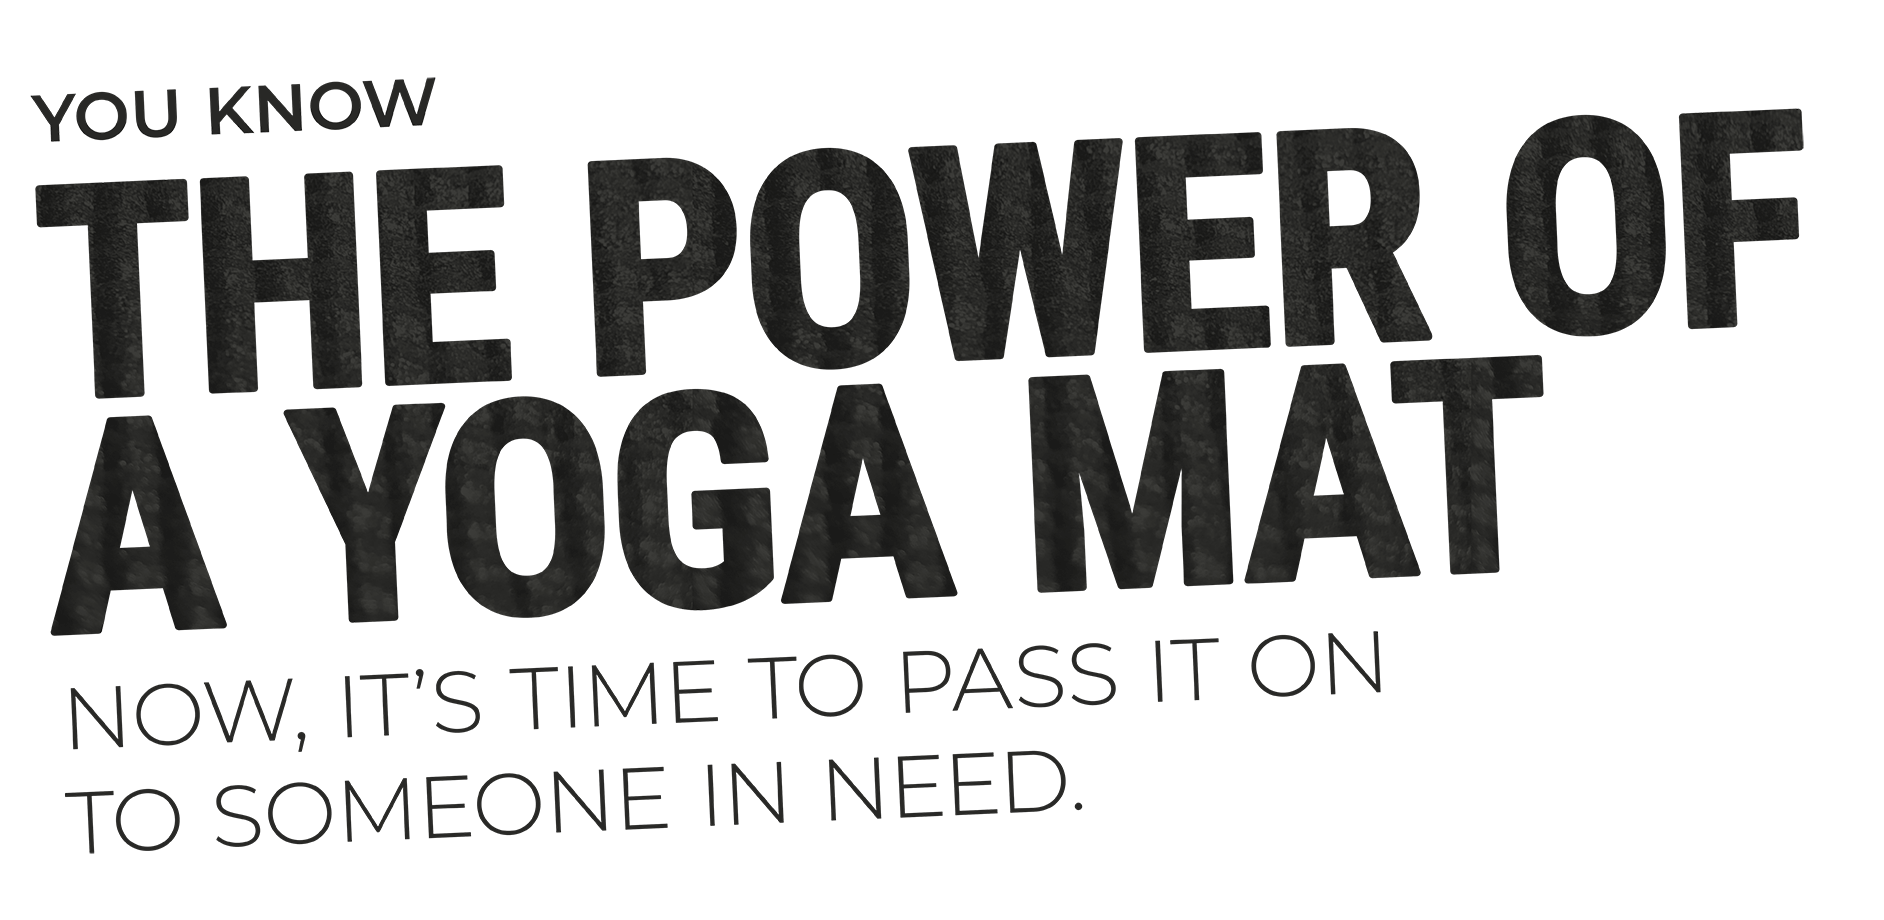 You know the power of a yoga mat. Now, it's time to pass it on to someone in need.